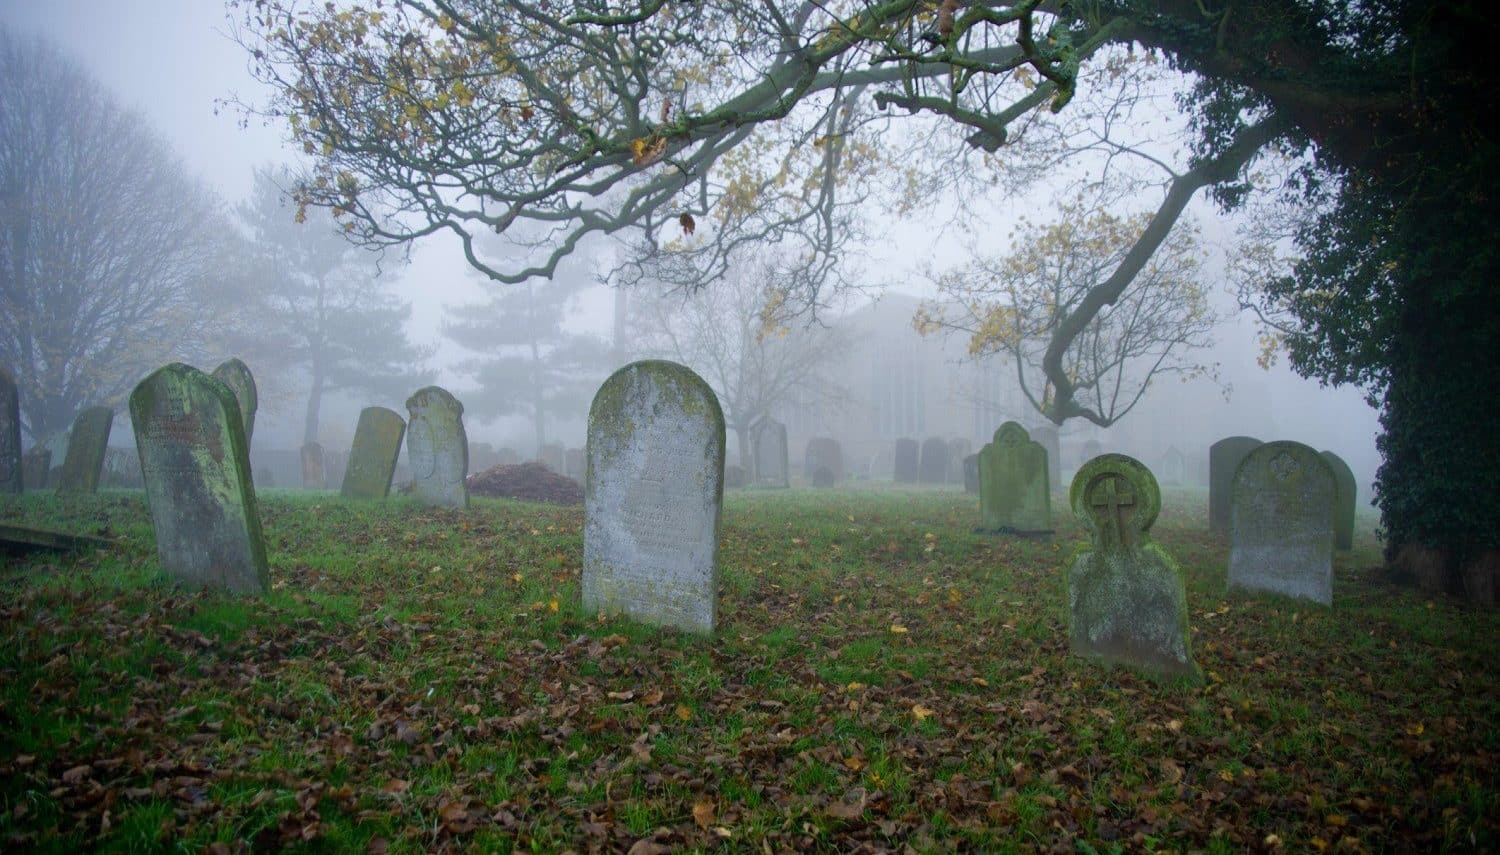 A foggy cemetery that's one of the stops on a Cape Cod ghost tour